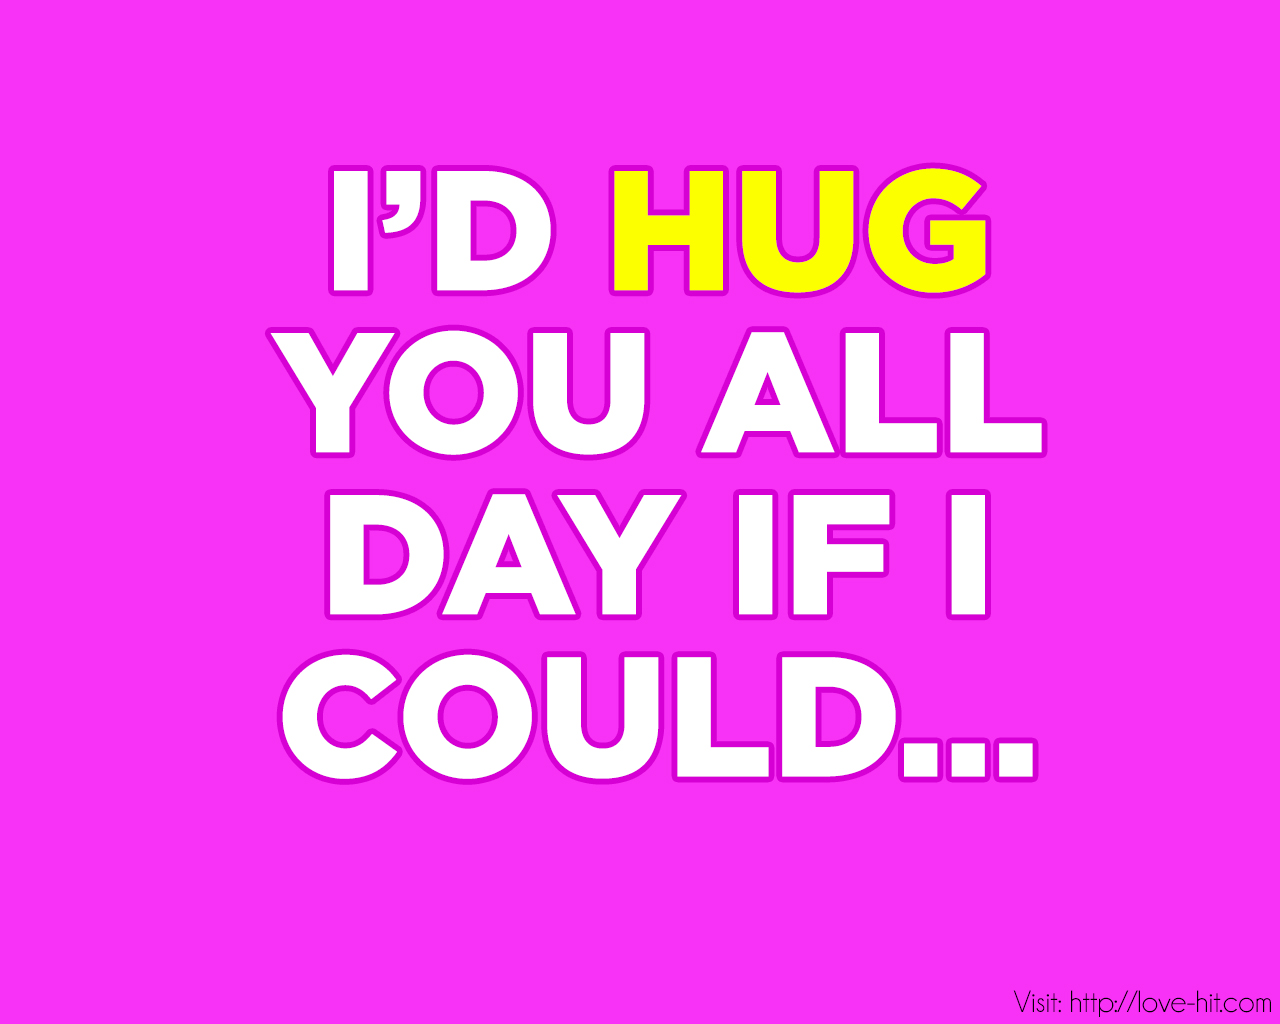 I would hug you all day if i could...